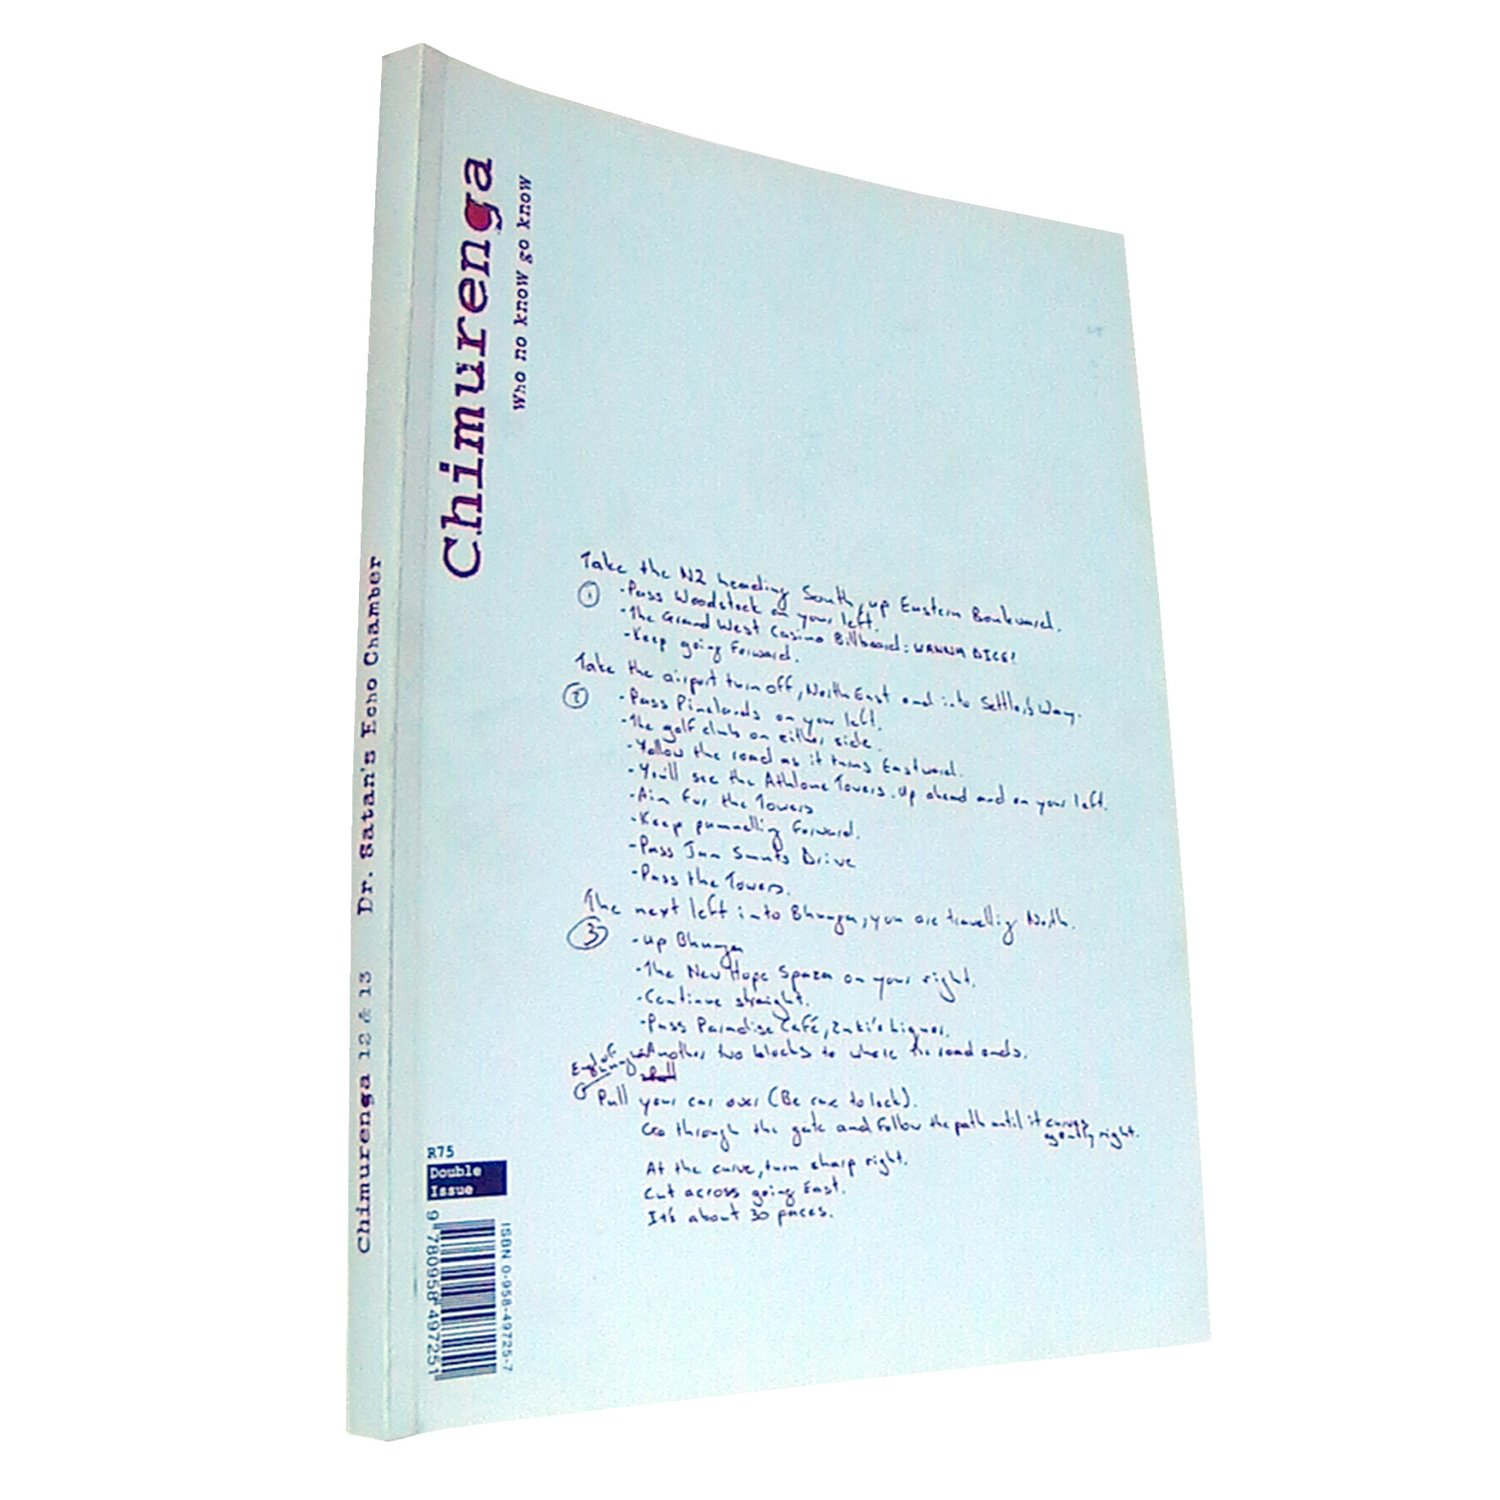 Chimurenga 12/13 - Dr Satan's Echo Chamber (Double-Issue March 2008)